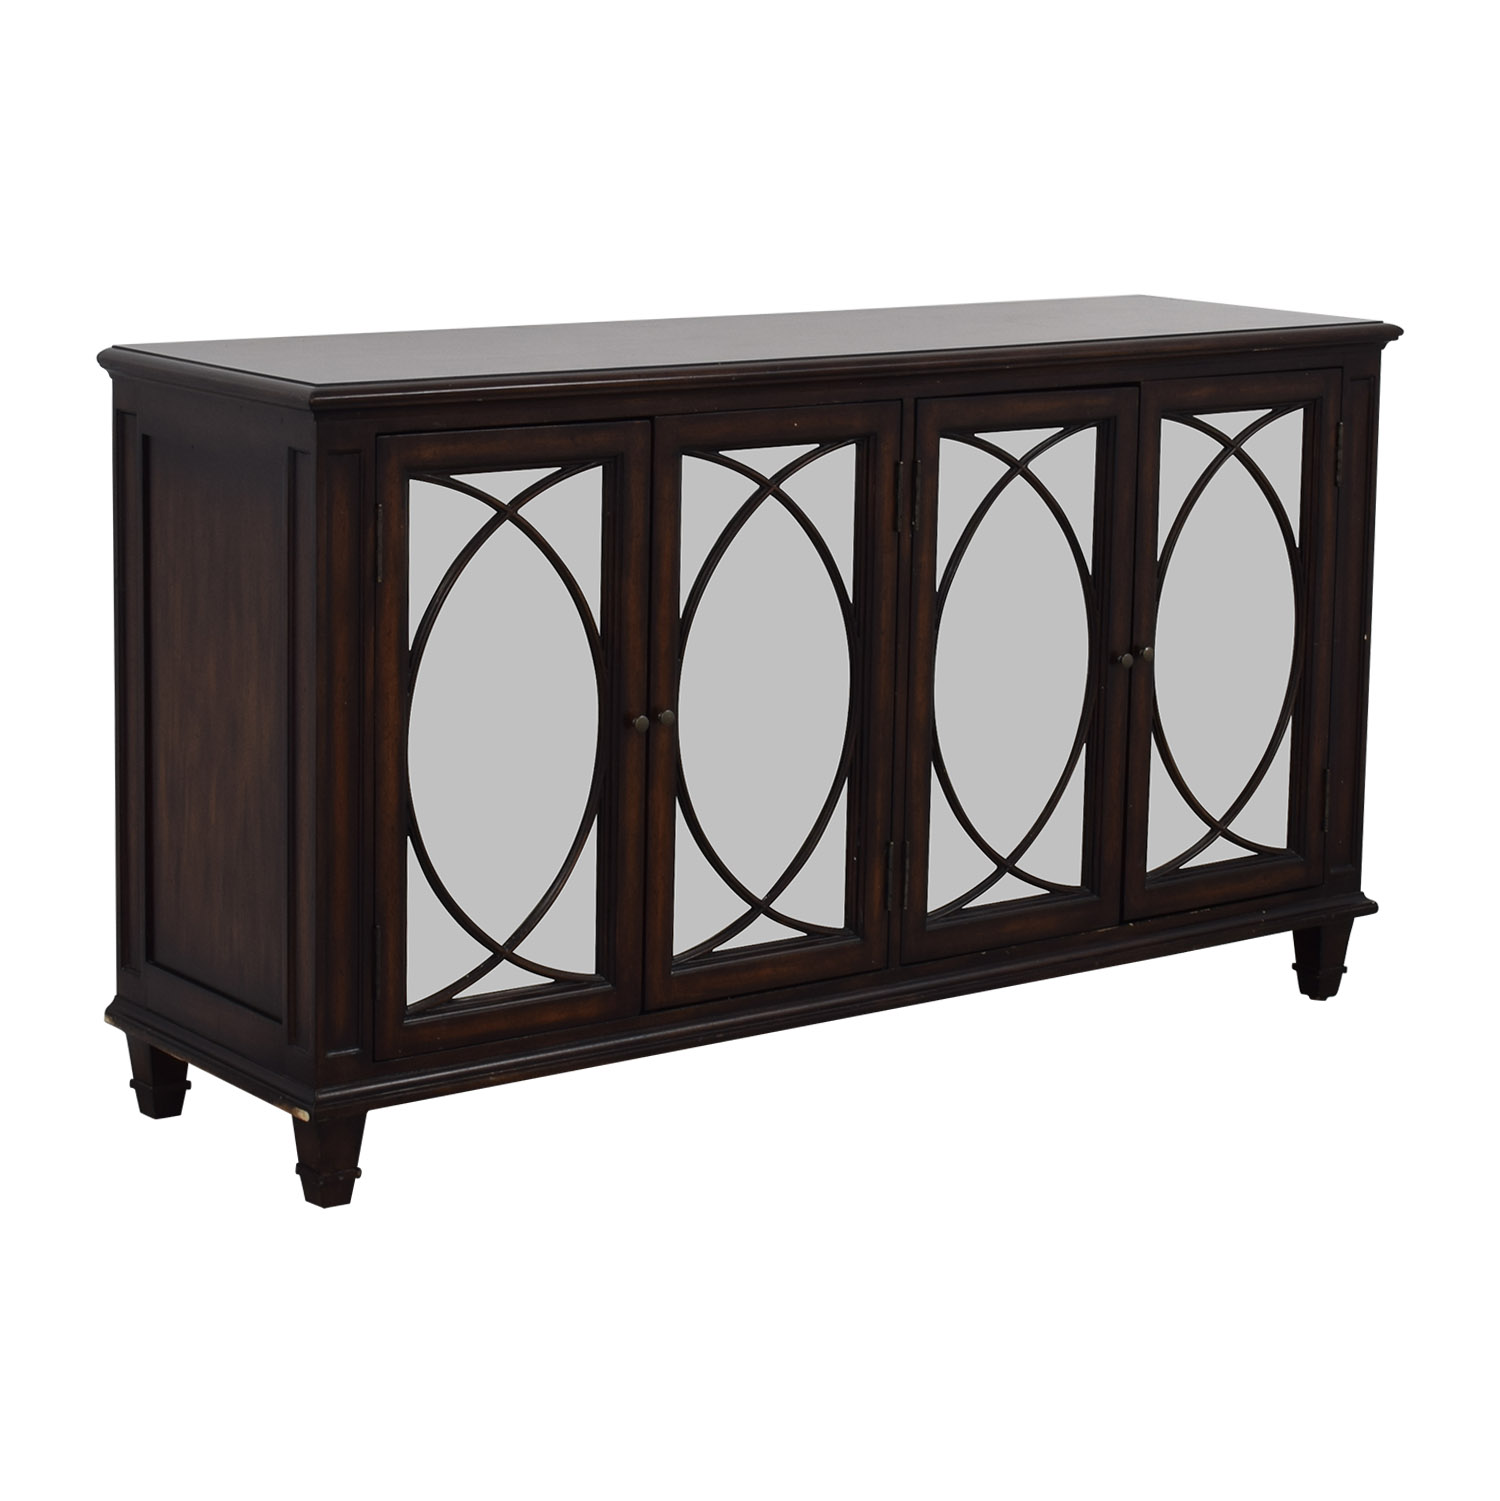 72 off ethan allan ethan allen brandt mirrored buffet storage - Ethan allen buffet table ...